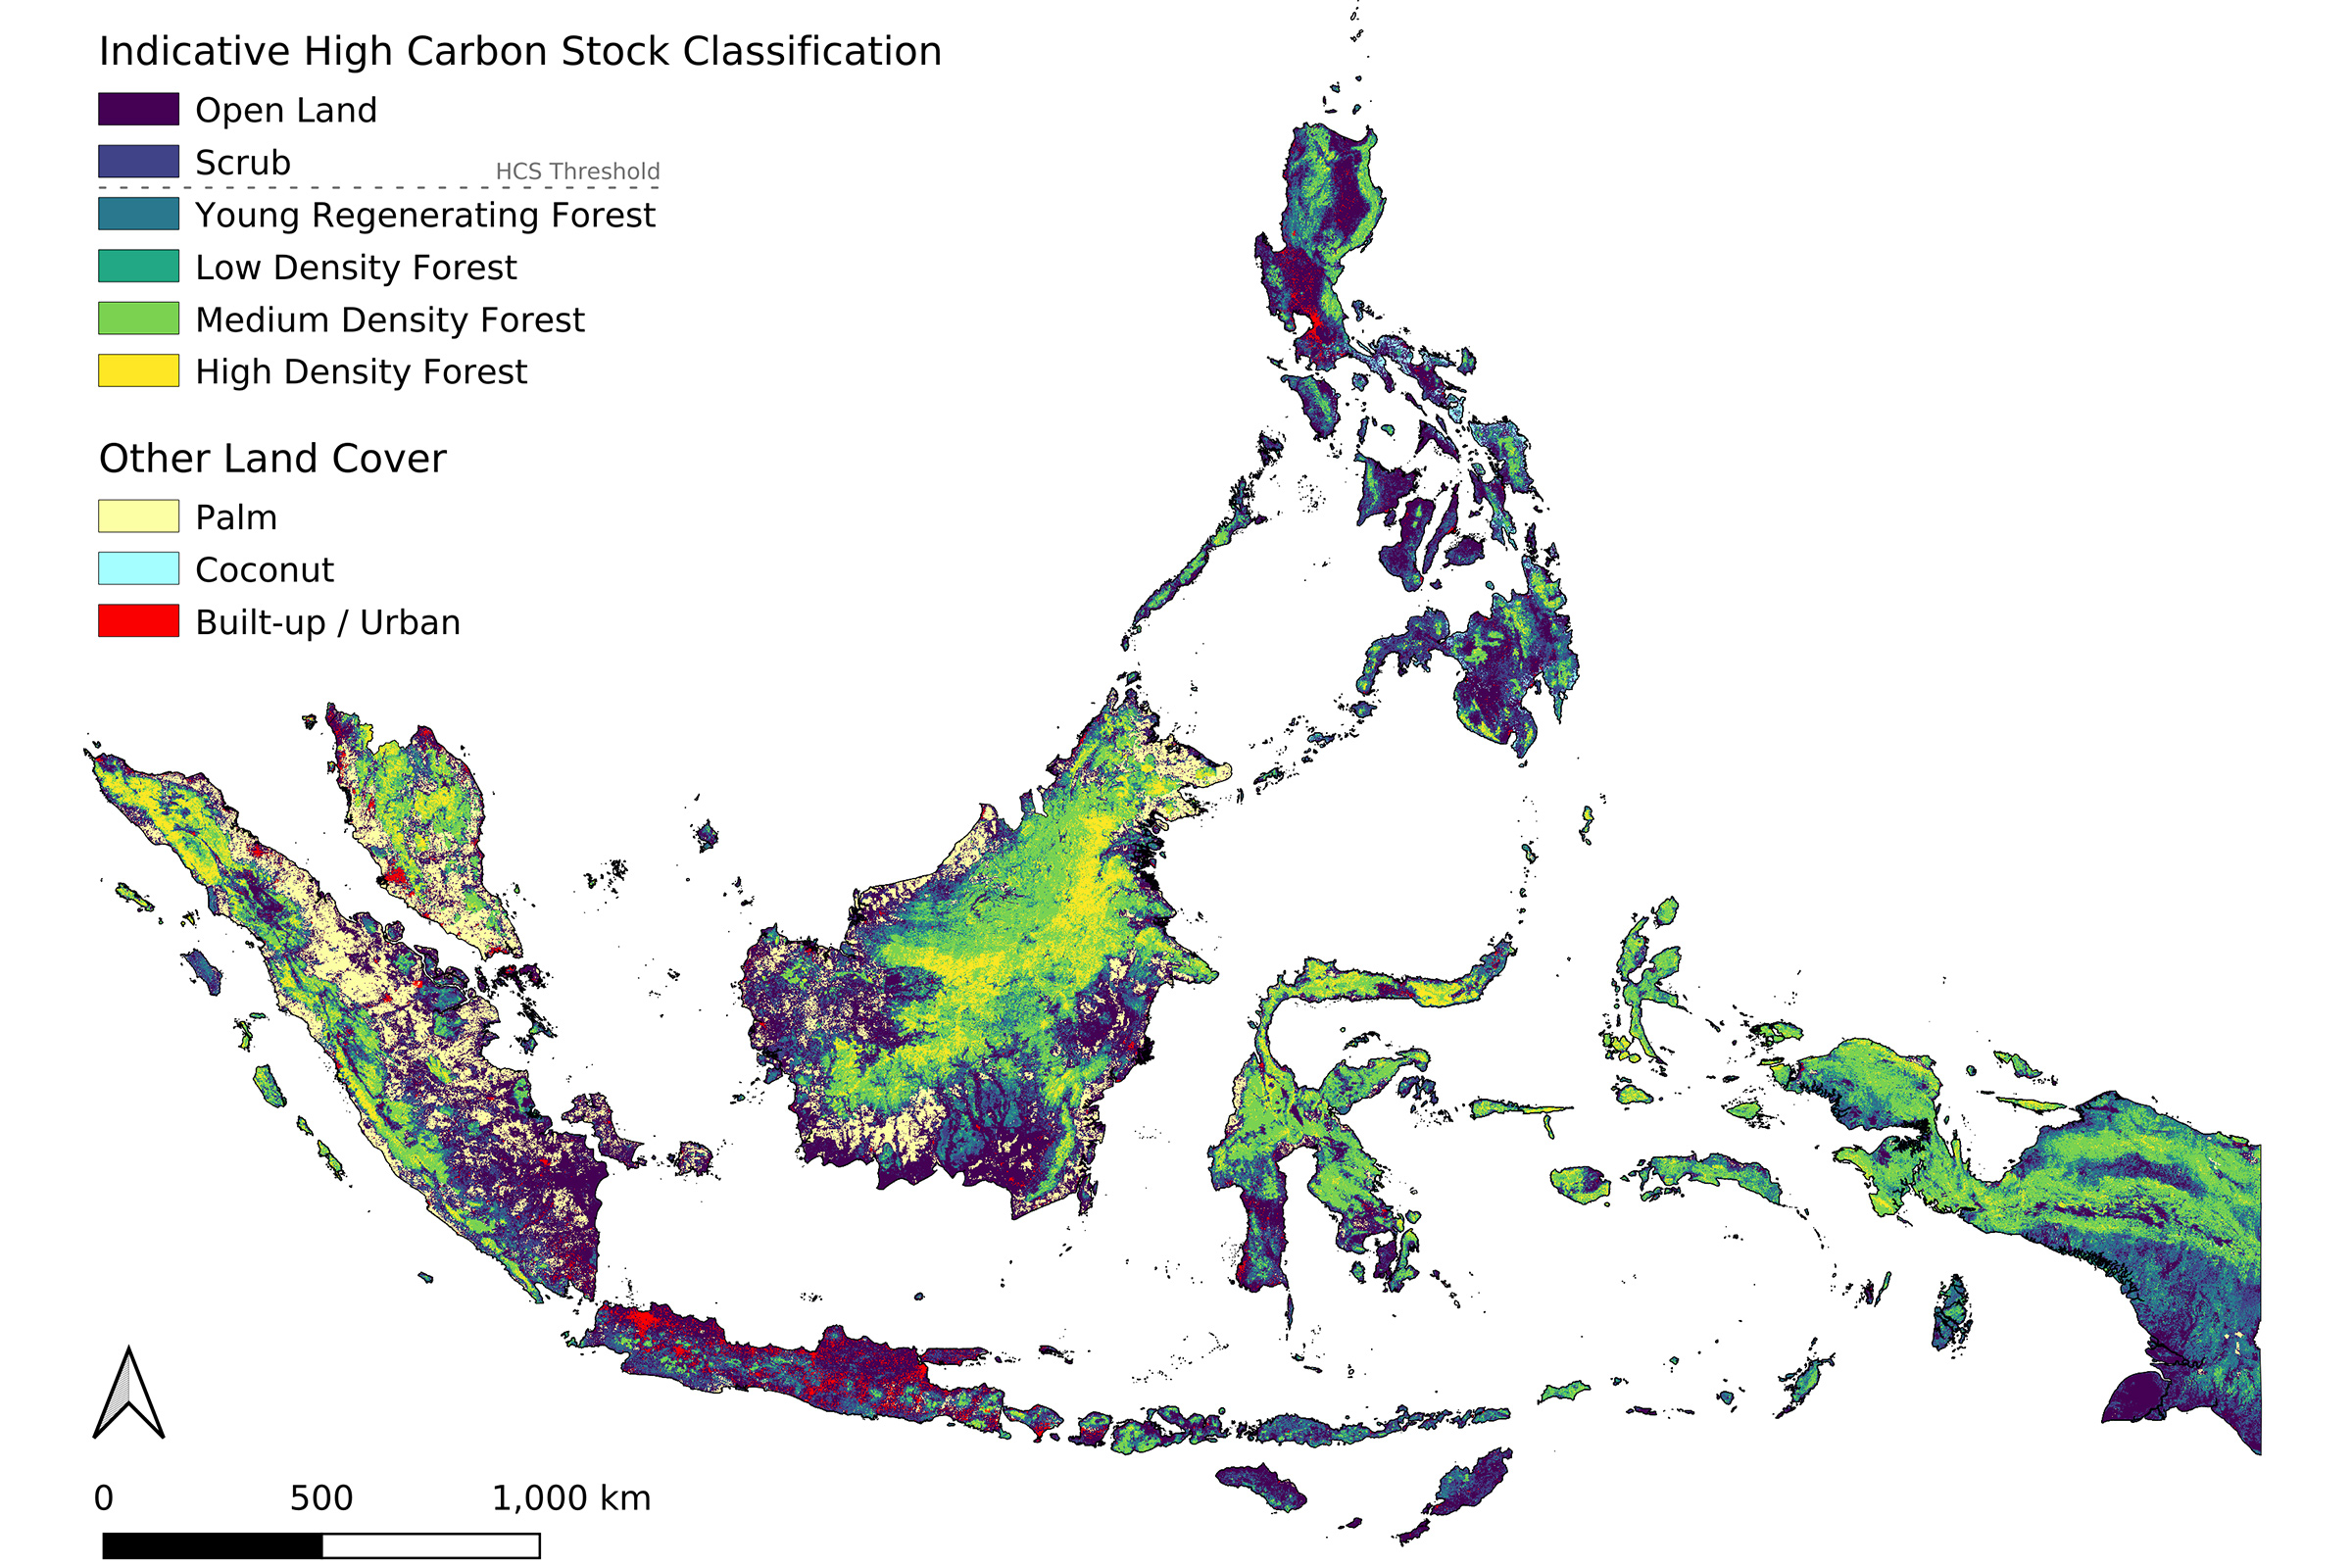 Indicative High Carbon Stock (HCS) map of Indonesia, the Philippines, and Malaysia, courtesy of the EcoVision Lab at ETH Zurich.